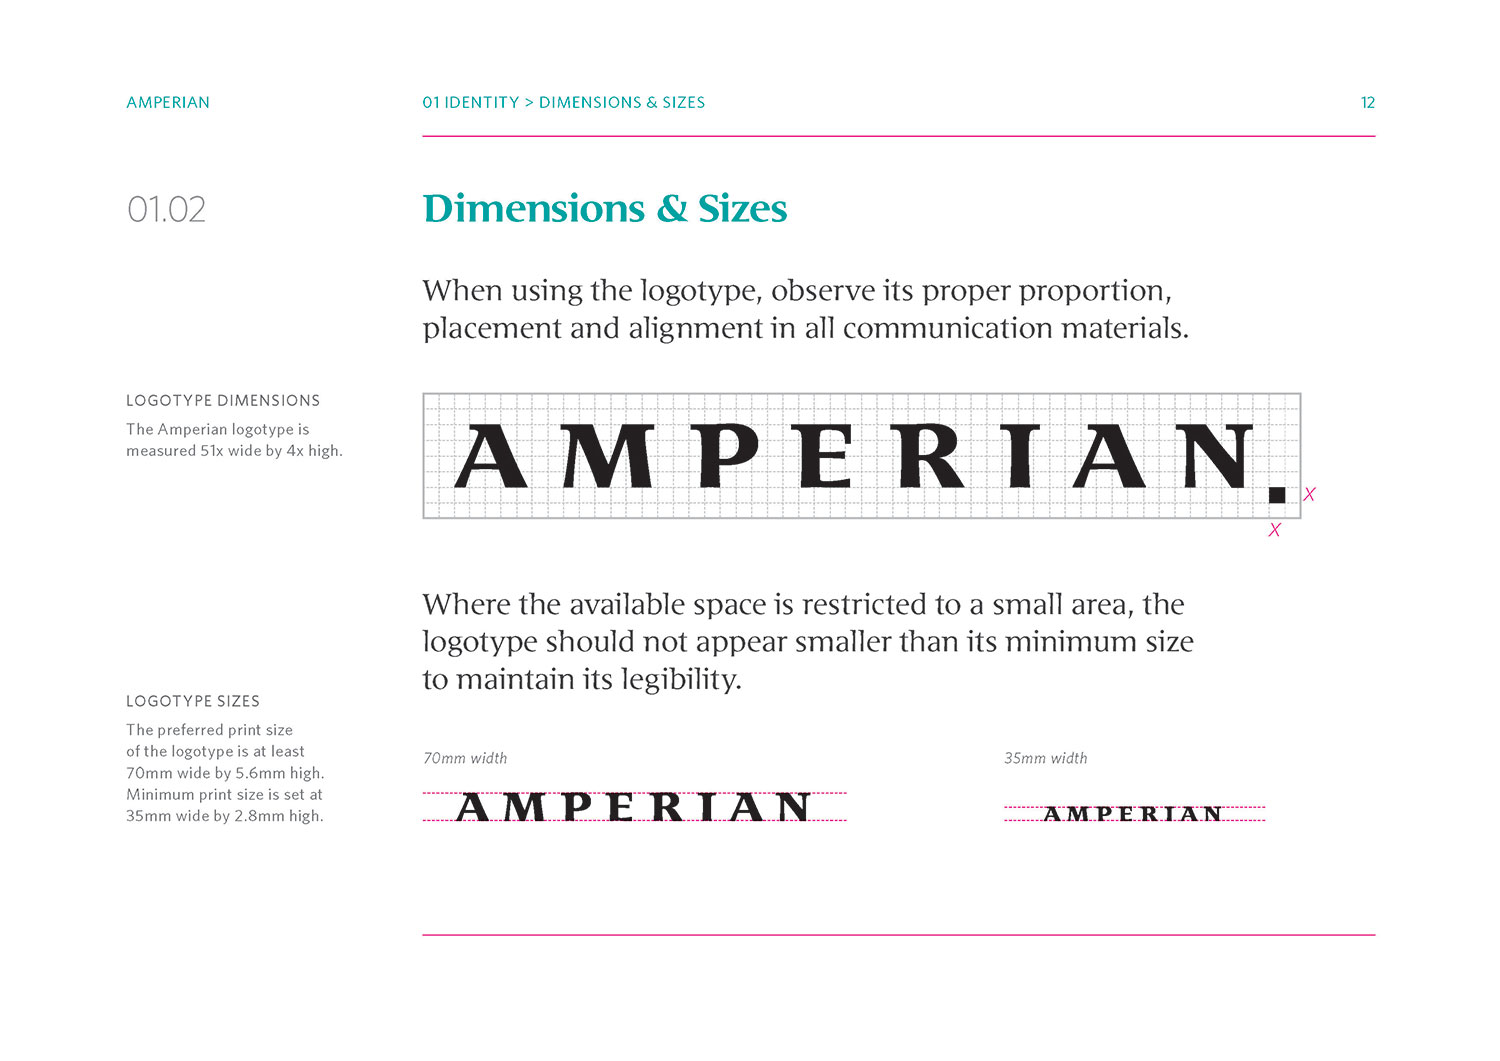 Amperian SG branding corporate identity design guide manual - Dimensions and sizes.